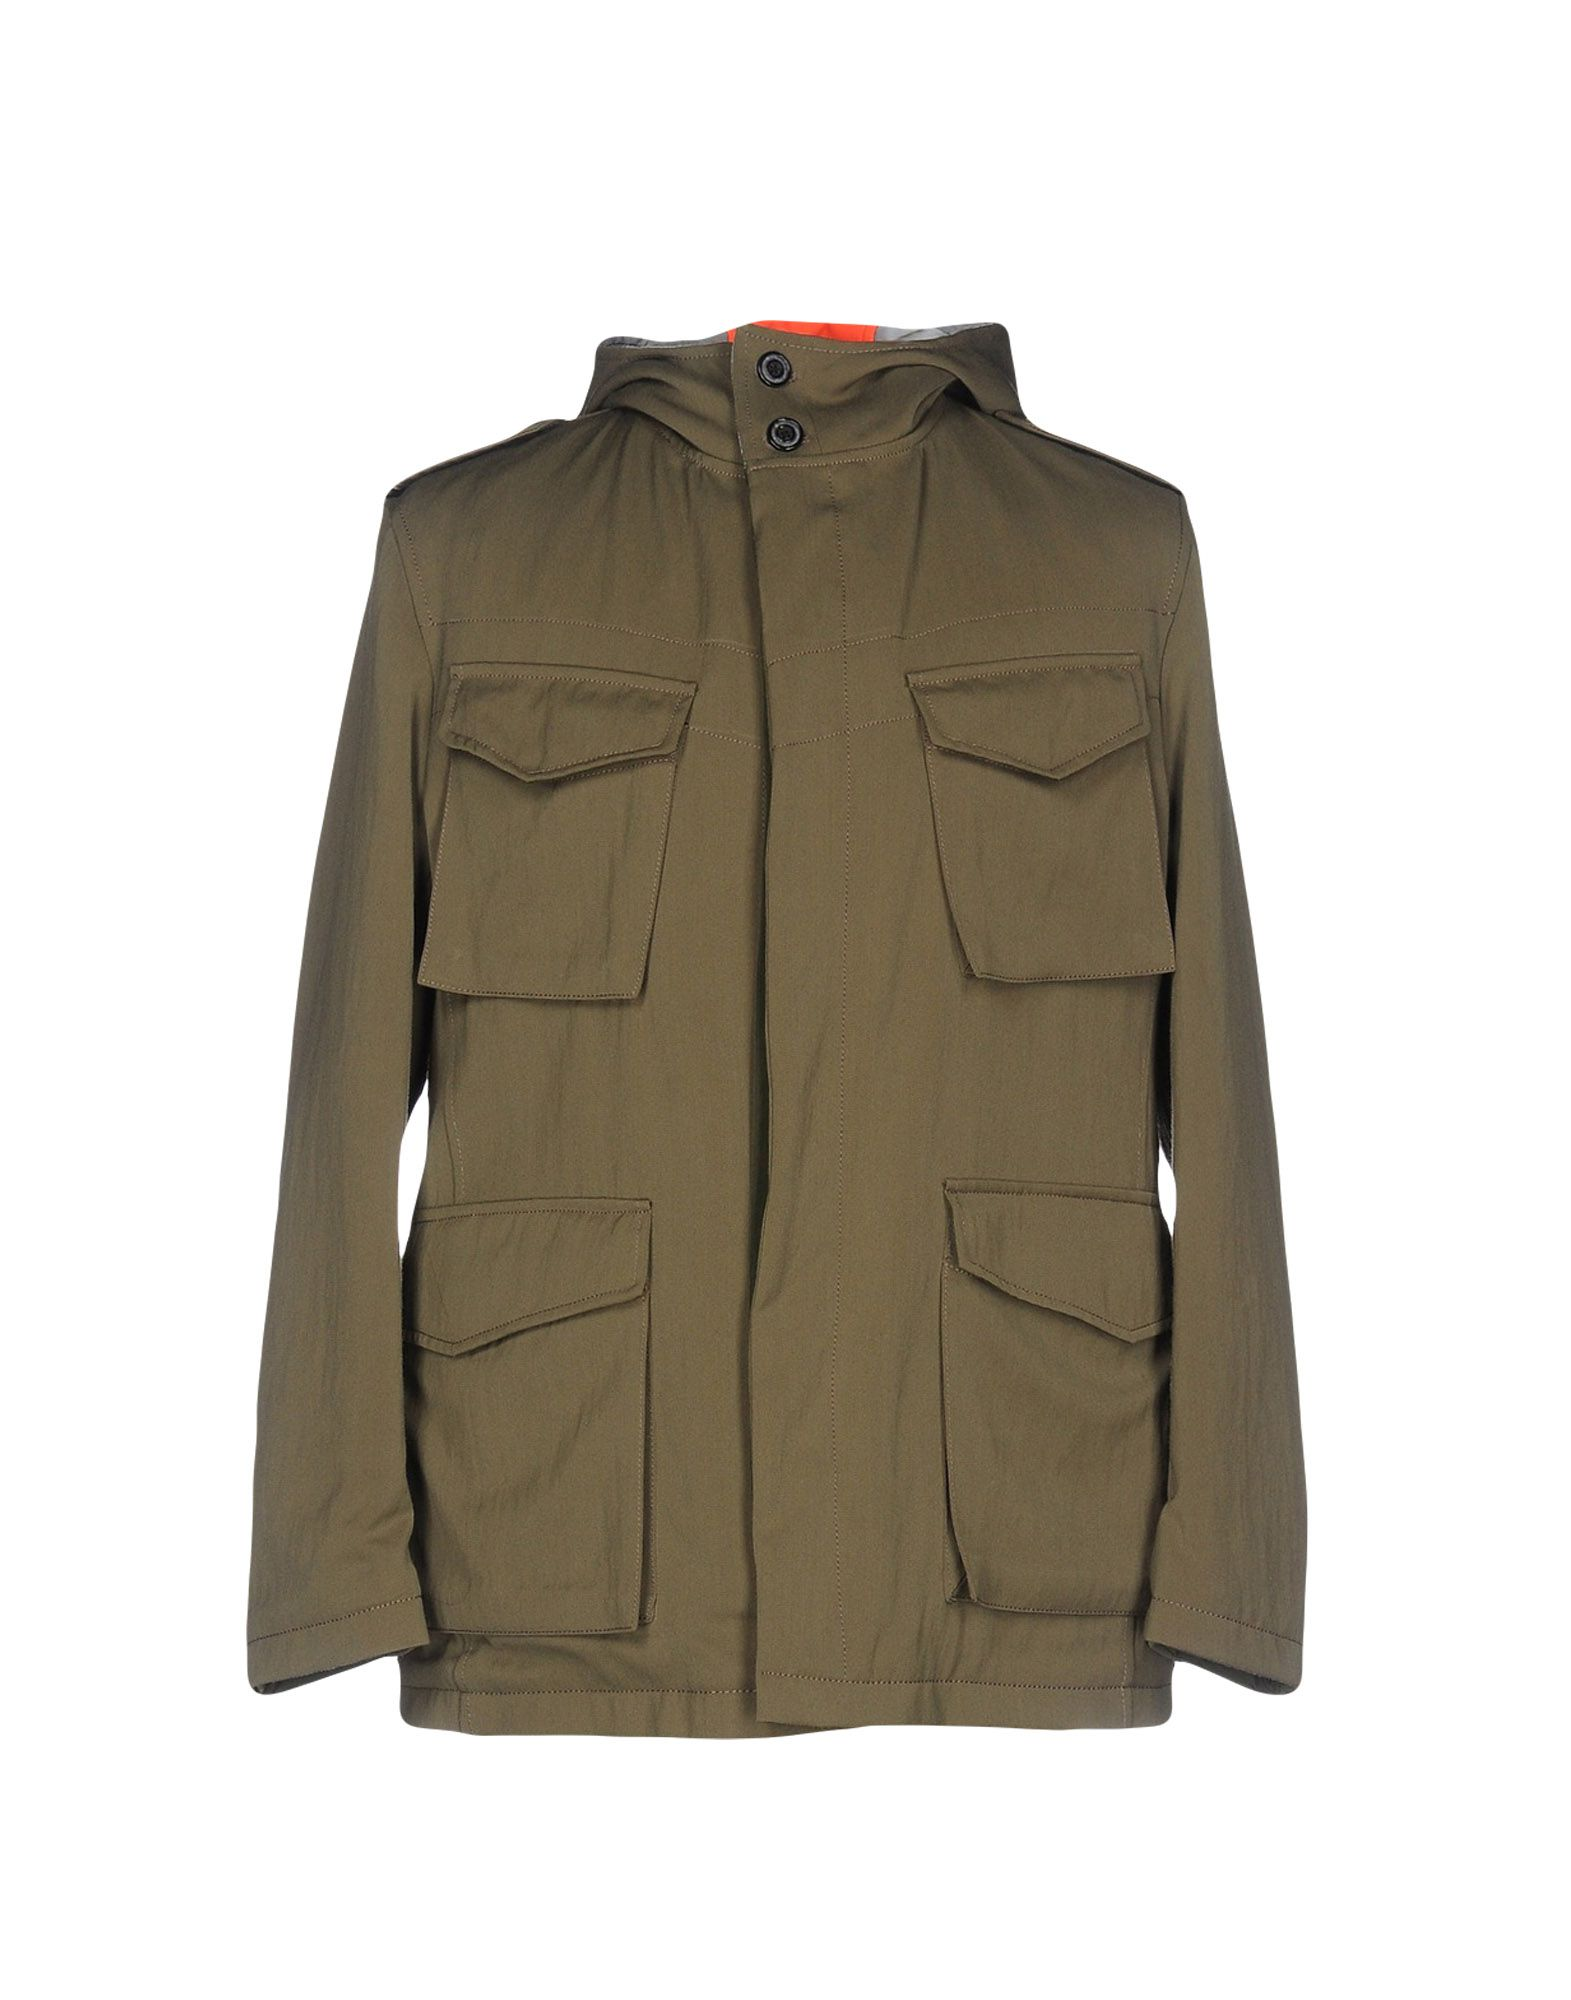 WOOSTER + LARDINI Jacket in Military Green